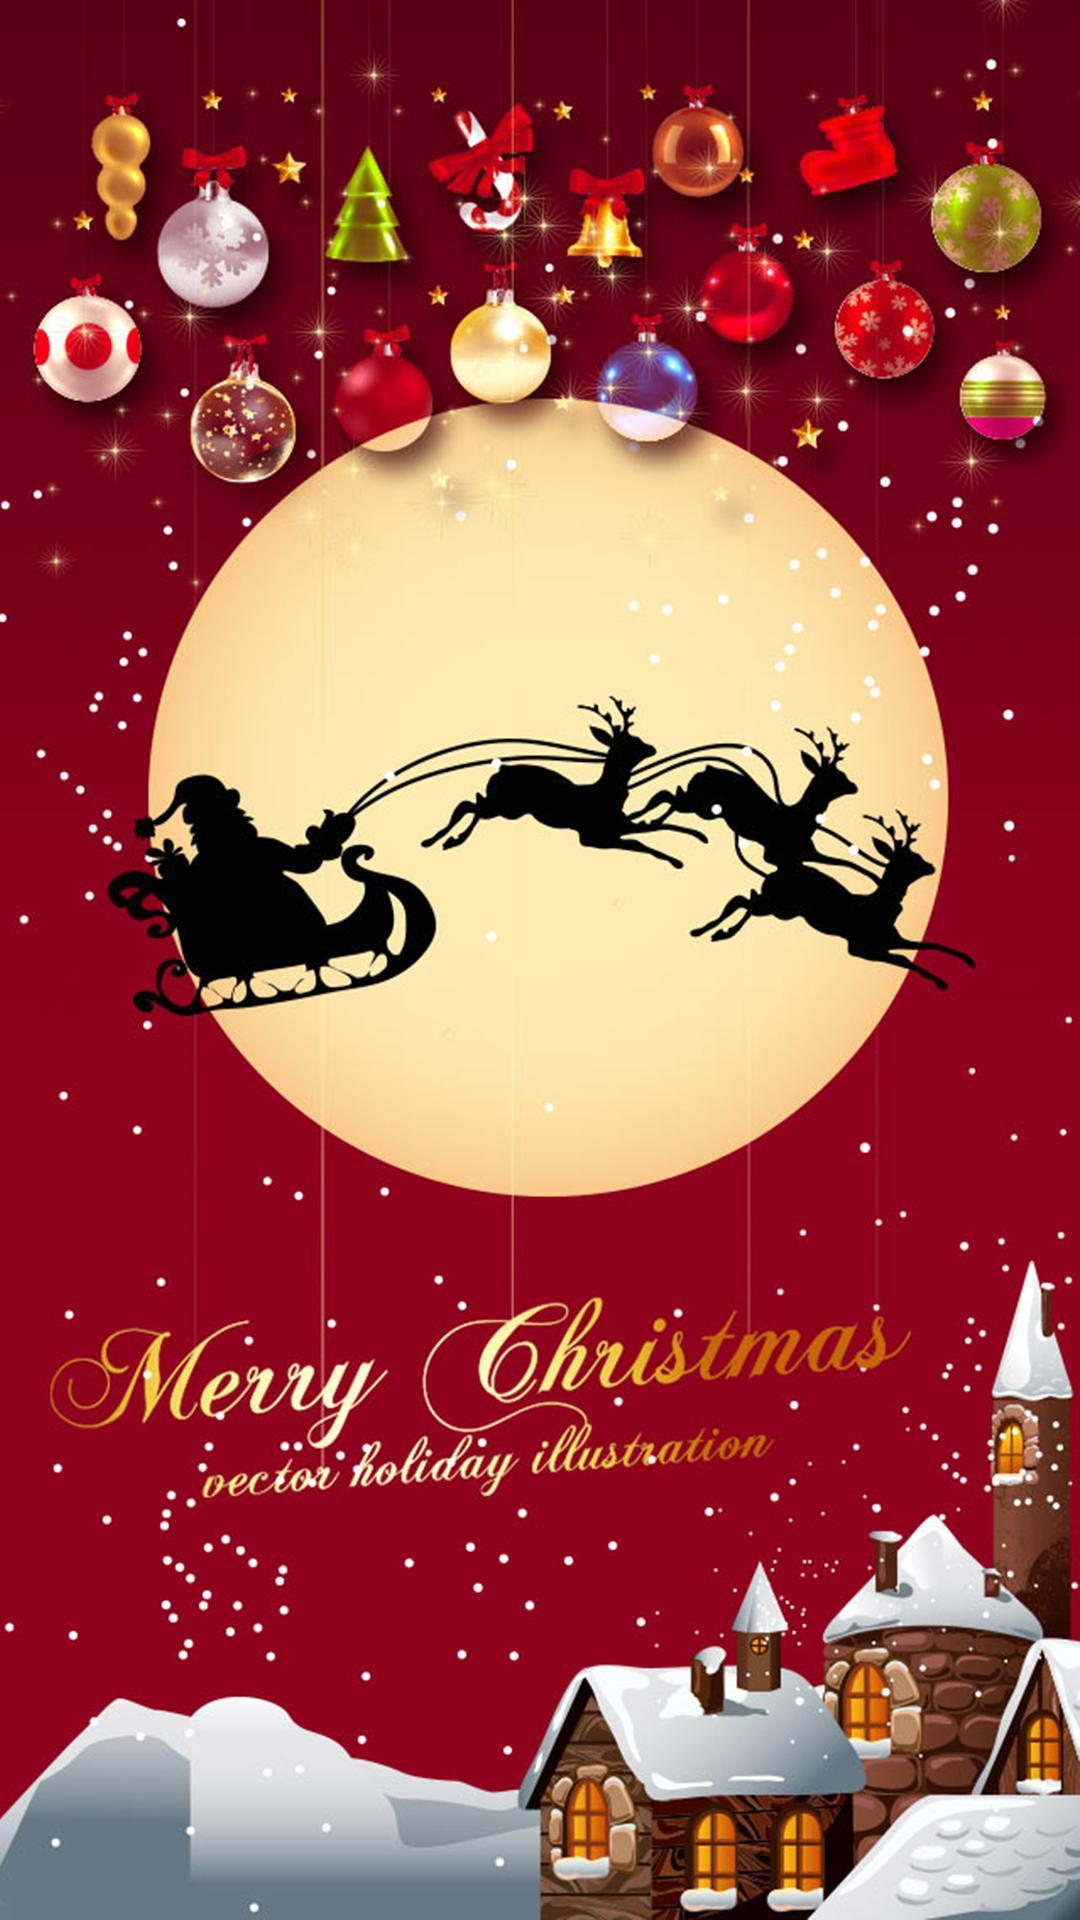 34] 2020 Christmas Pictures Wallpapers on WallpaperSafari 1080x1920